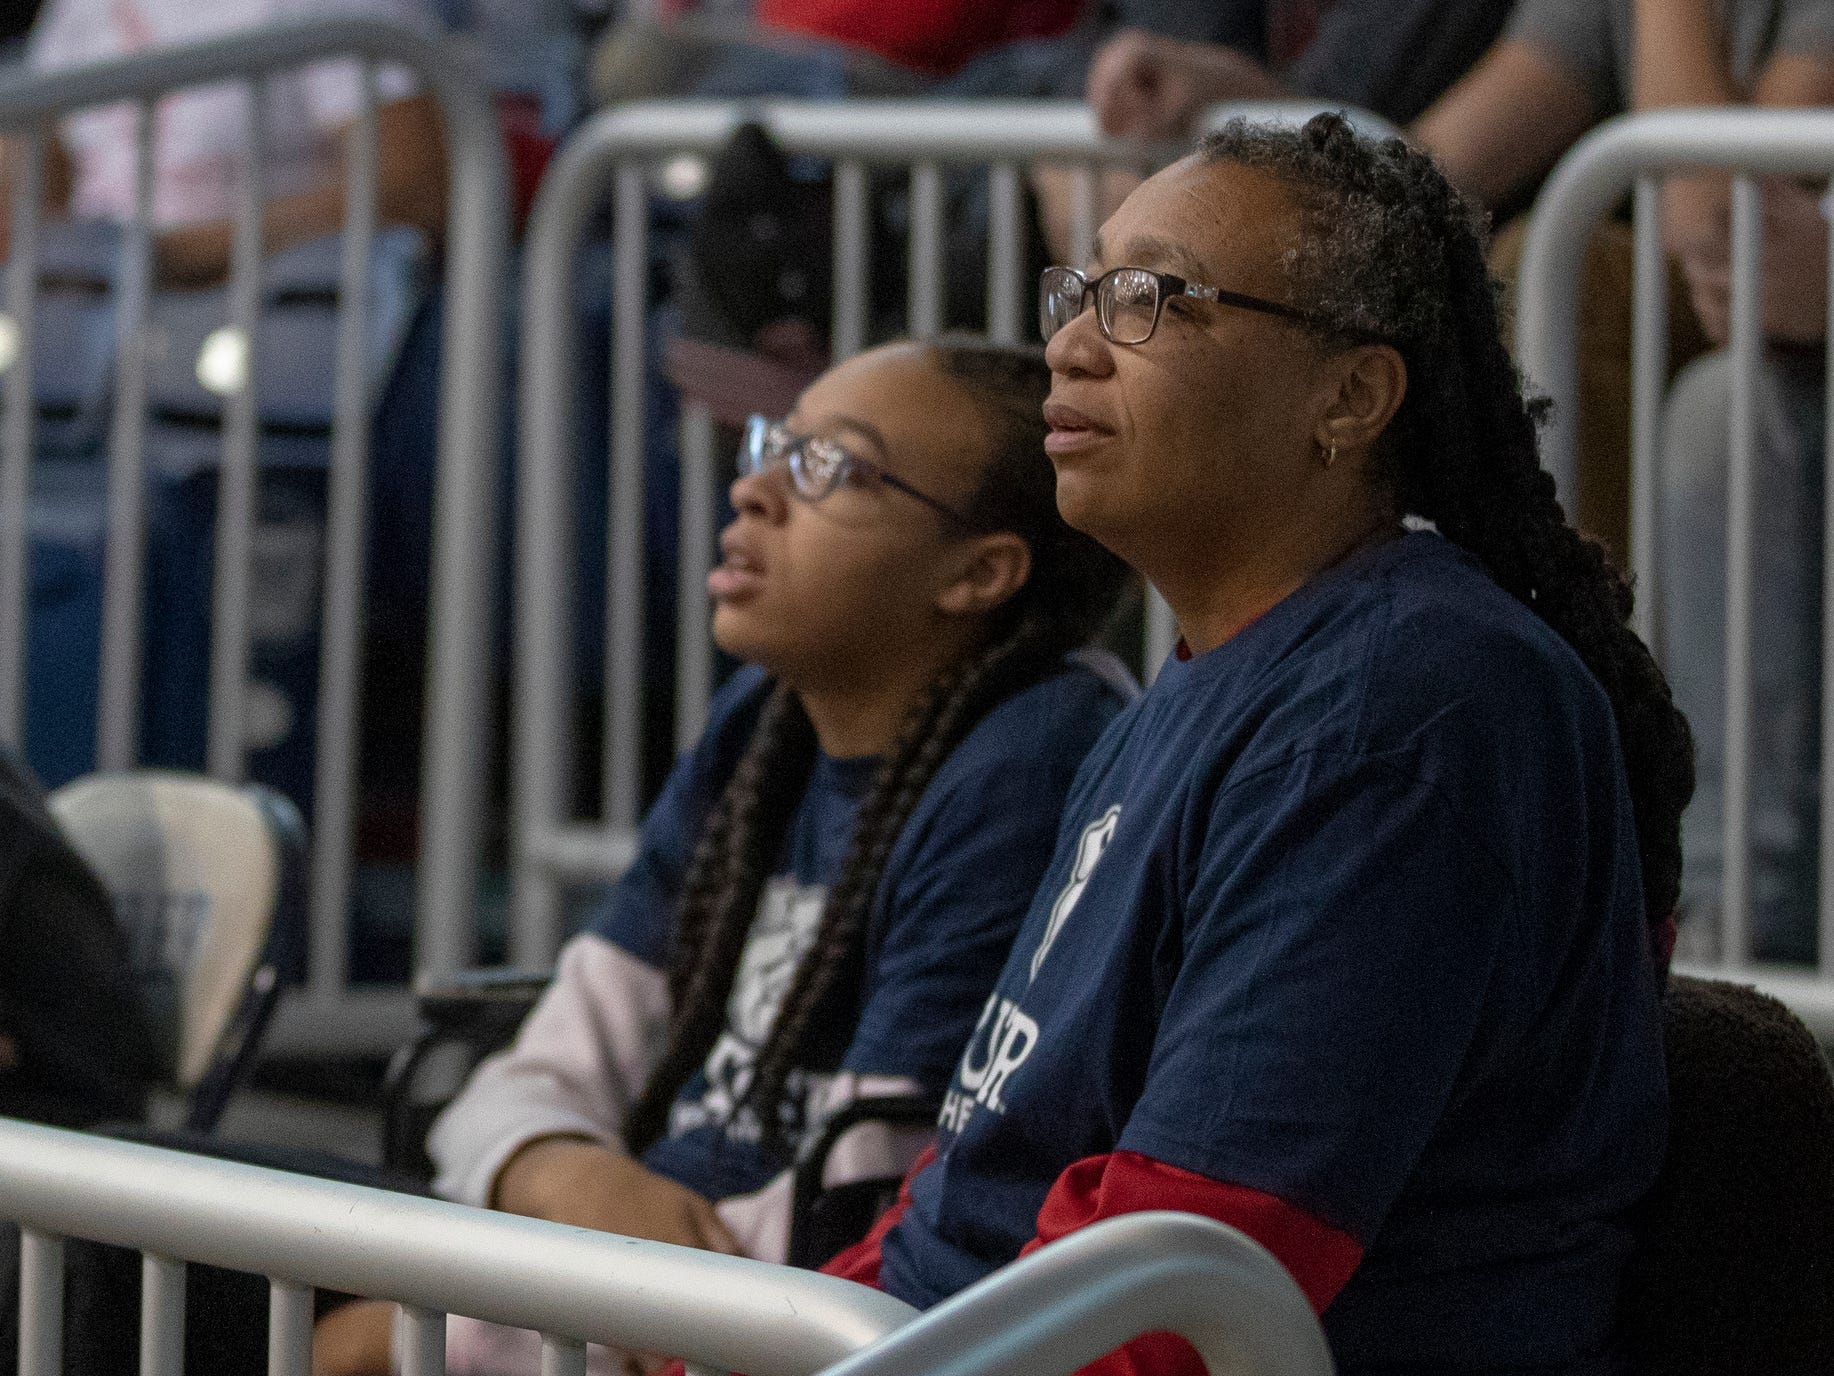 Yolanda Ward-Lee (right), sits with her daughter Kiara Lee, 19, and son at a special halftime performance during the Butler women's basketball game at Hinkle Fieldhouse, Indianapolis, Sunday, Dec. 2, 2018. Butler cheer and dance groups paired up with physical therapy students from Indiana University to teach young people with special needs a routine in preparation for a special performance during the afternoon's halftime show.